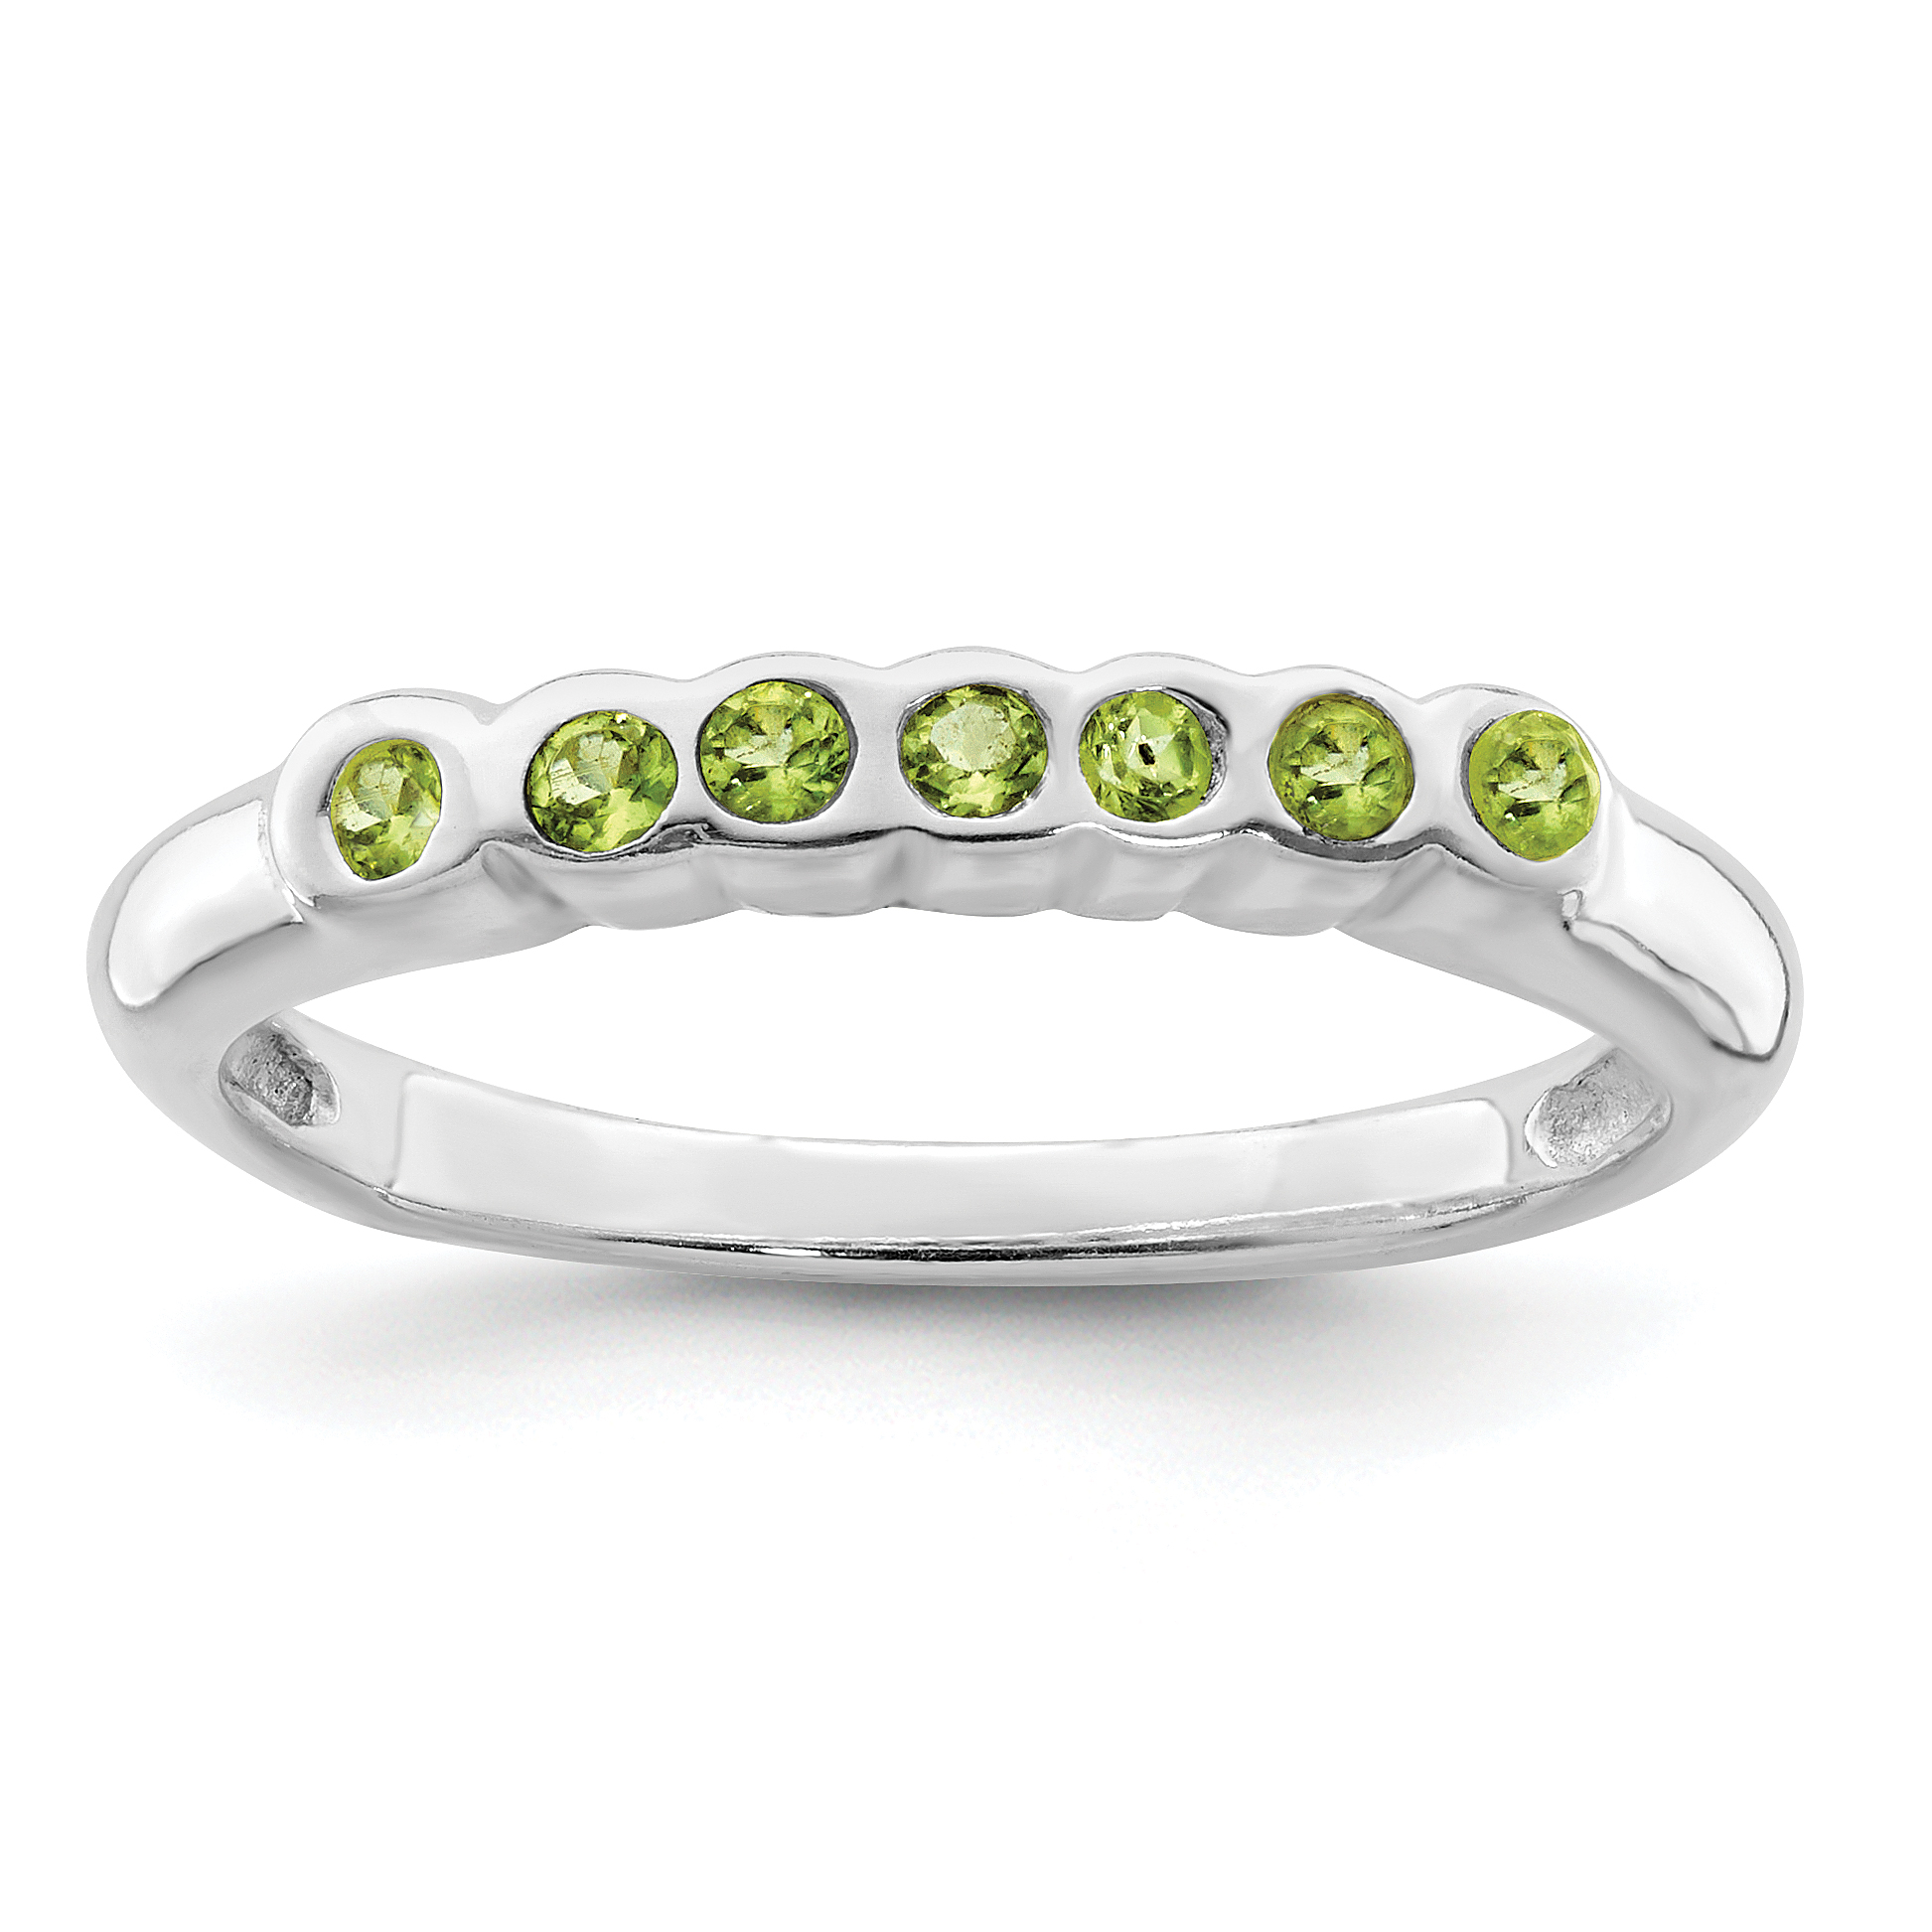 925 Sterling Silver Green Peridot Band Ring Size 7.00 Stone Gemstone Fine Jewelry Gifts For Women For Her - image 2 de 2